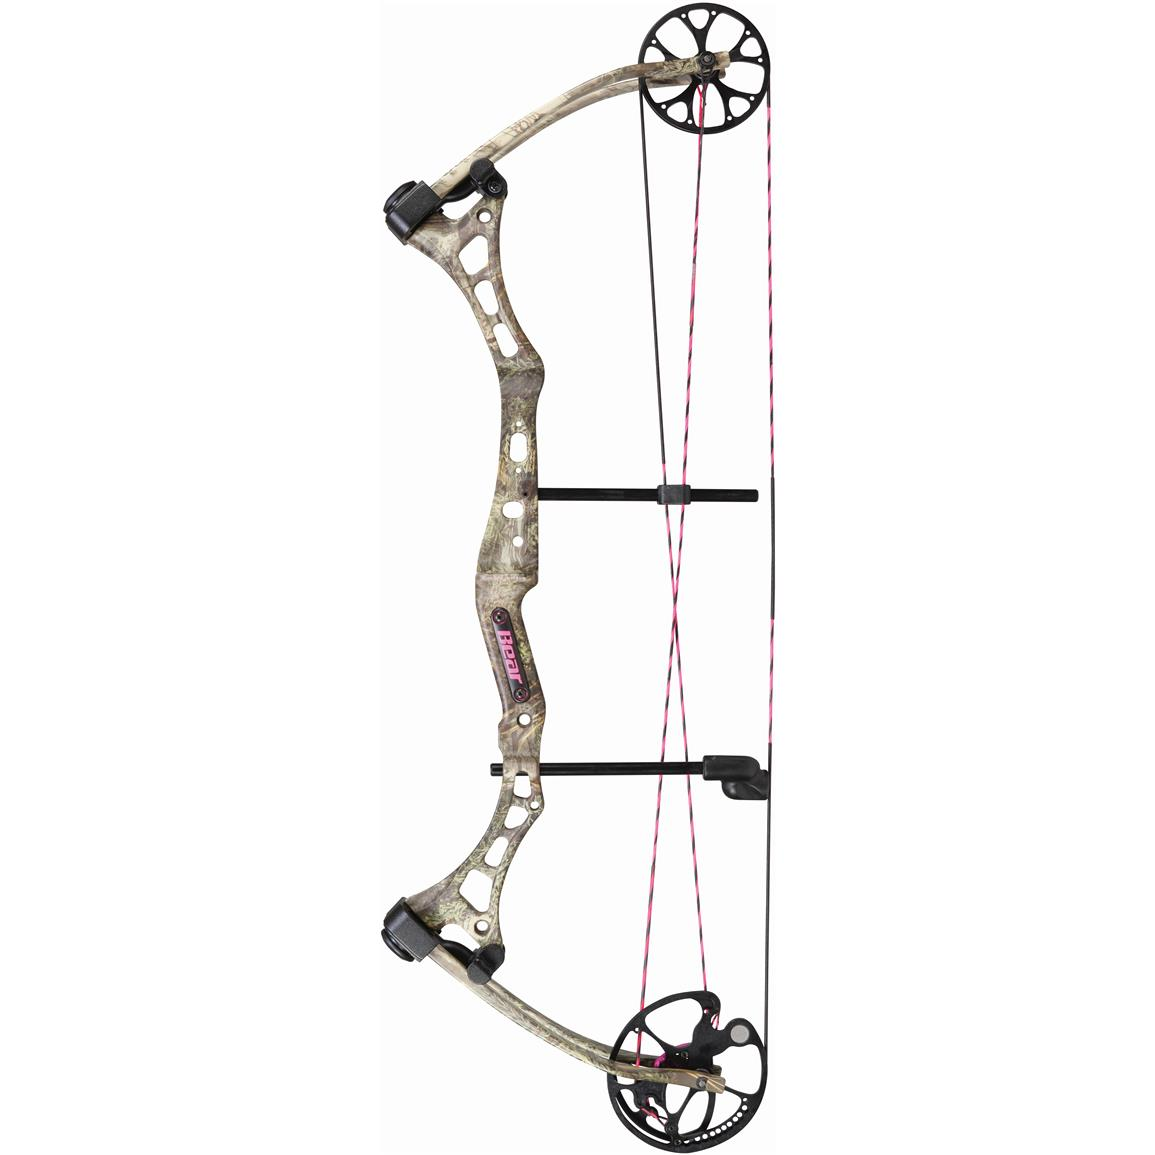 Bear Archery® Finesse Women's Compound Bow